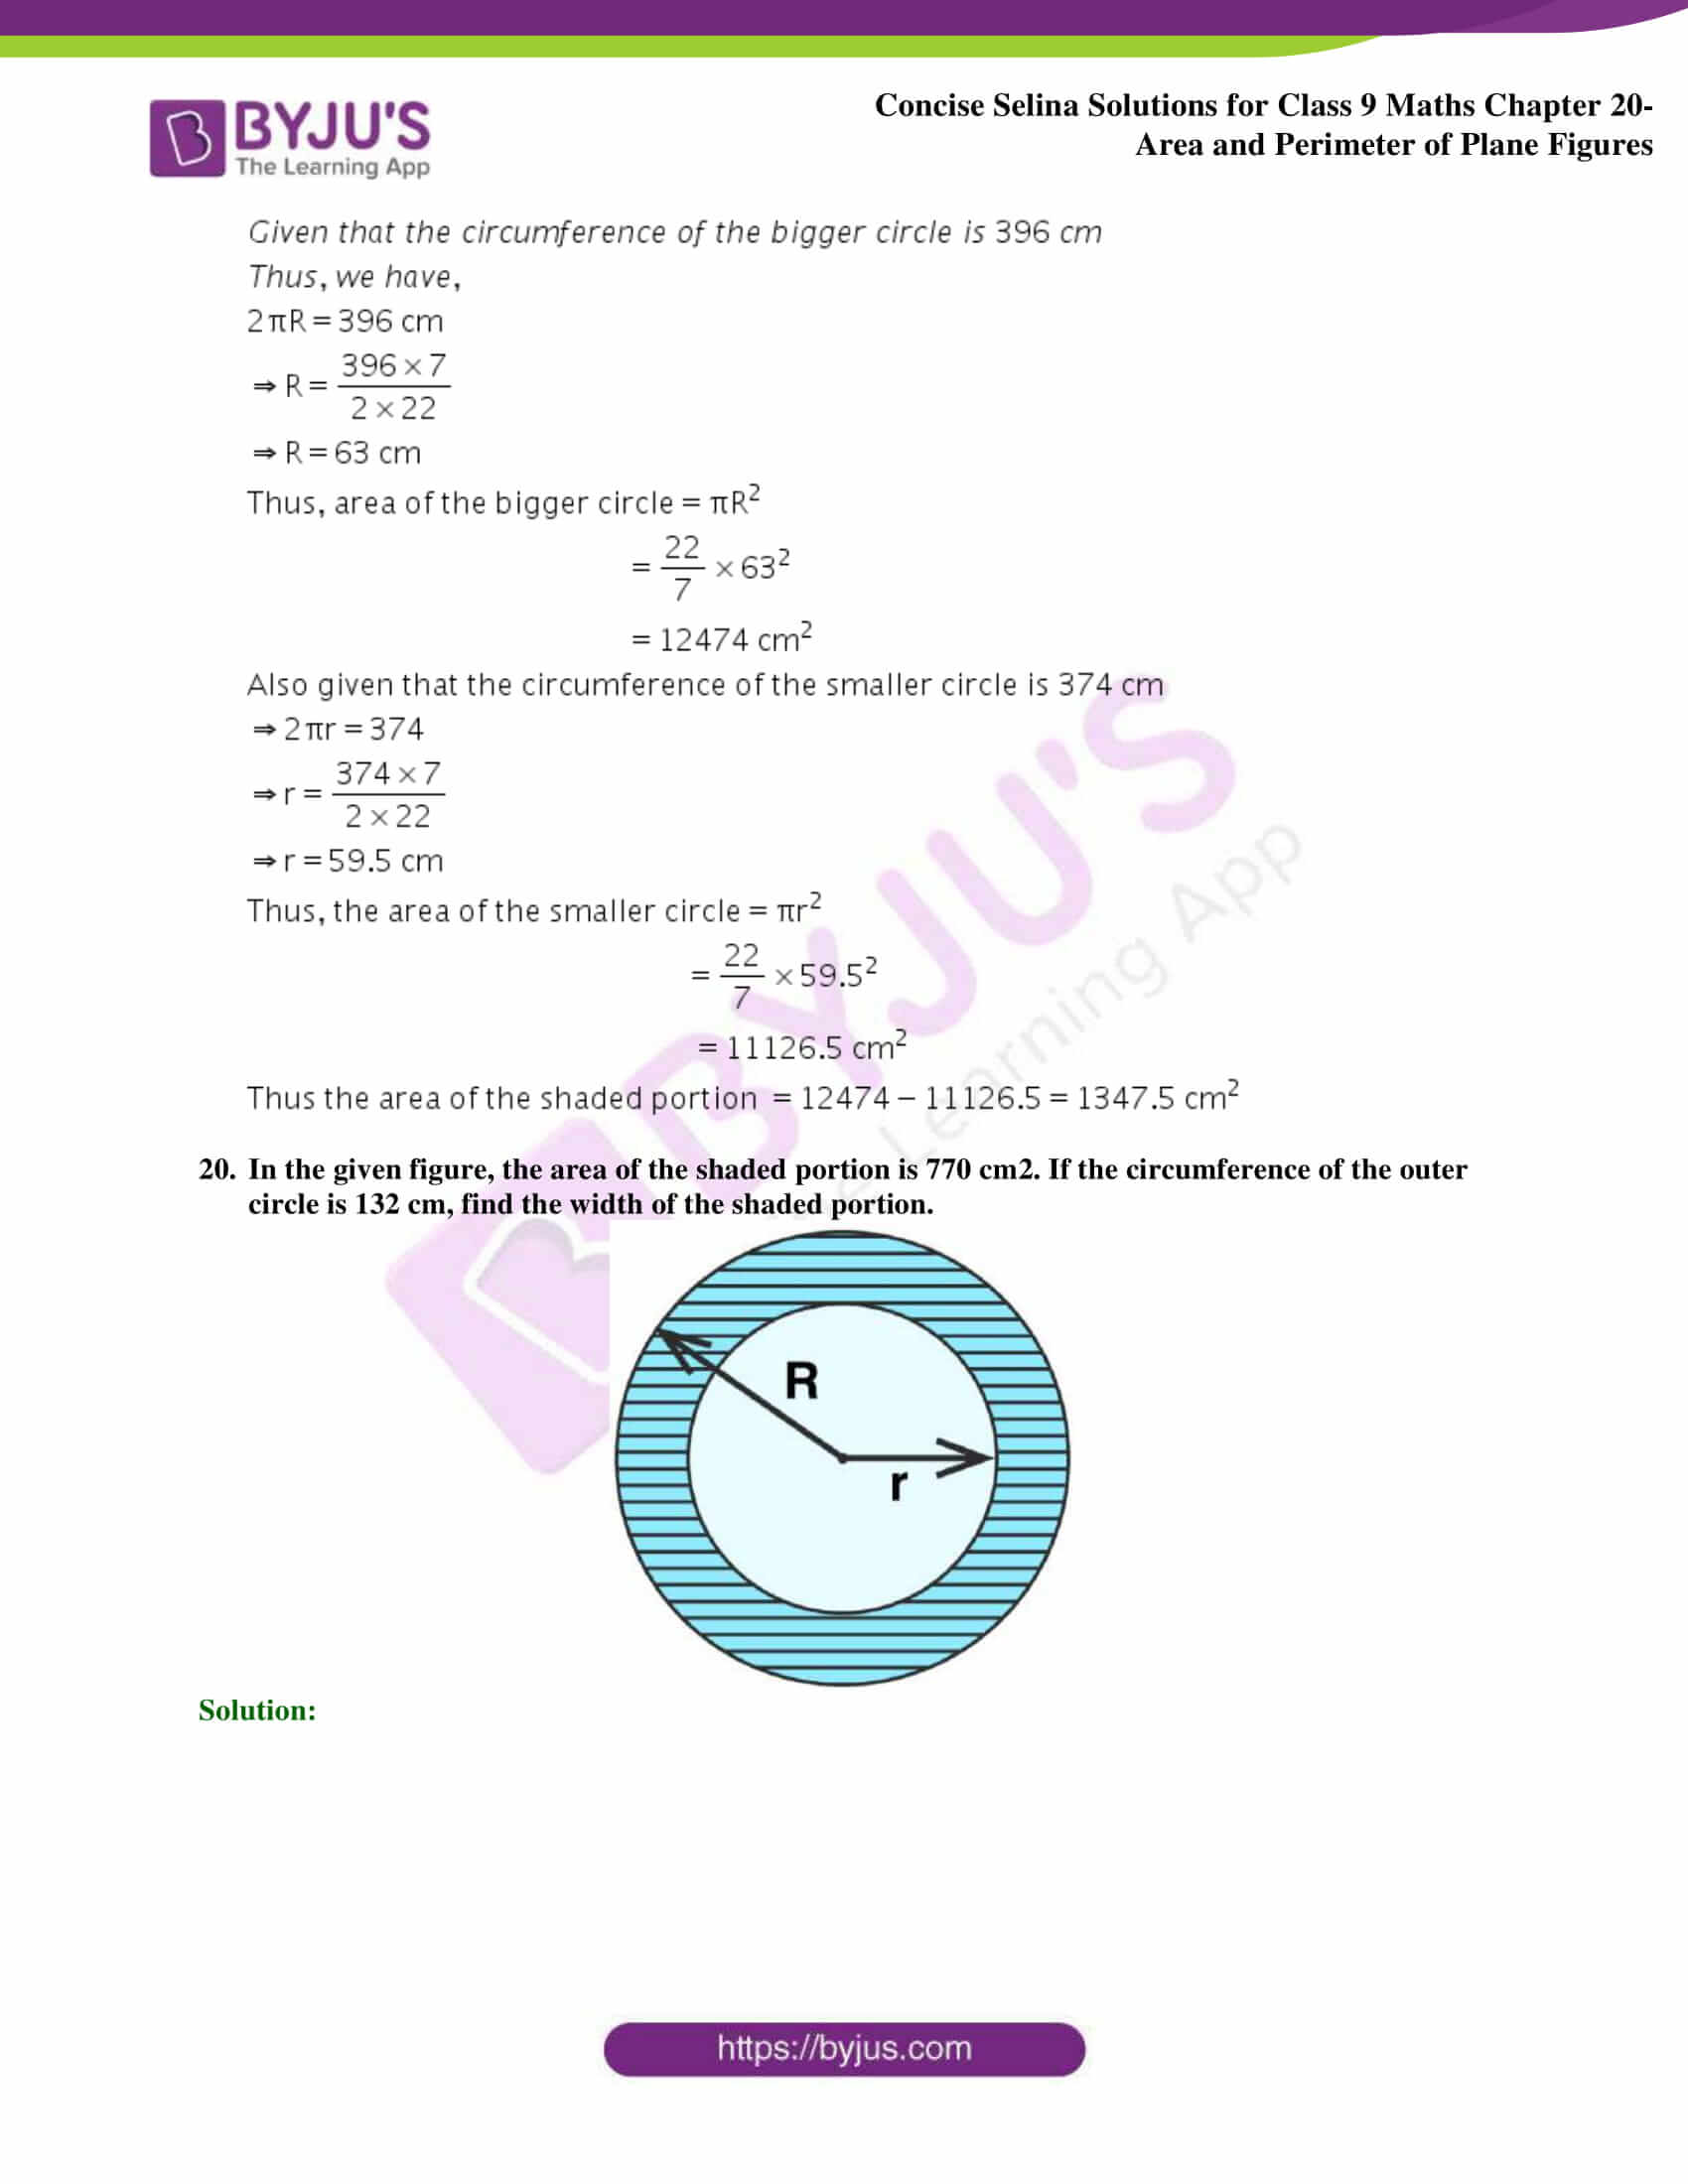 Concise Selina Solutions Class 9 Maths Chapter 20 Area and Perimeter of Plane part 41